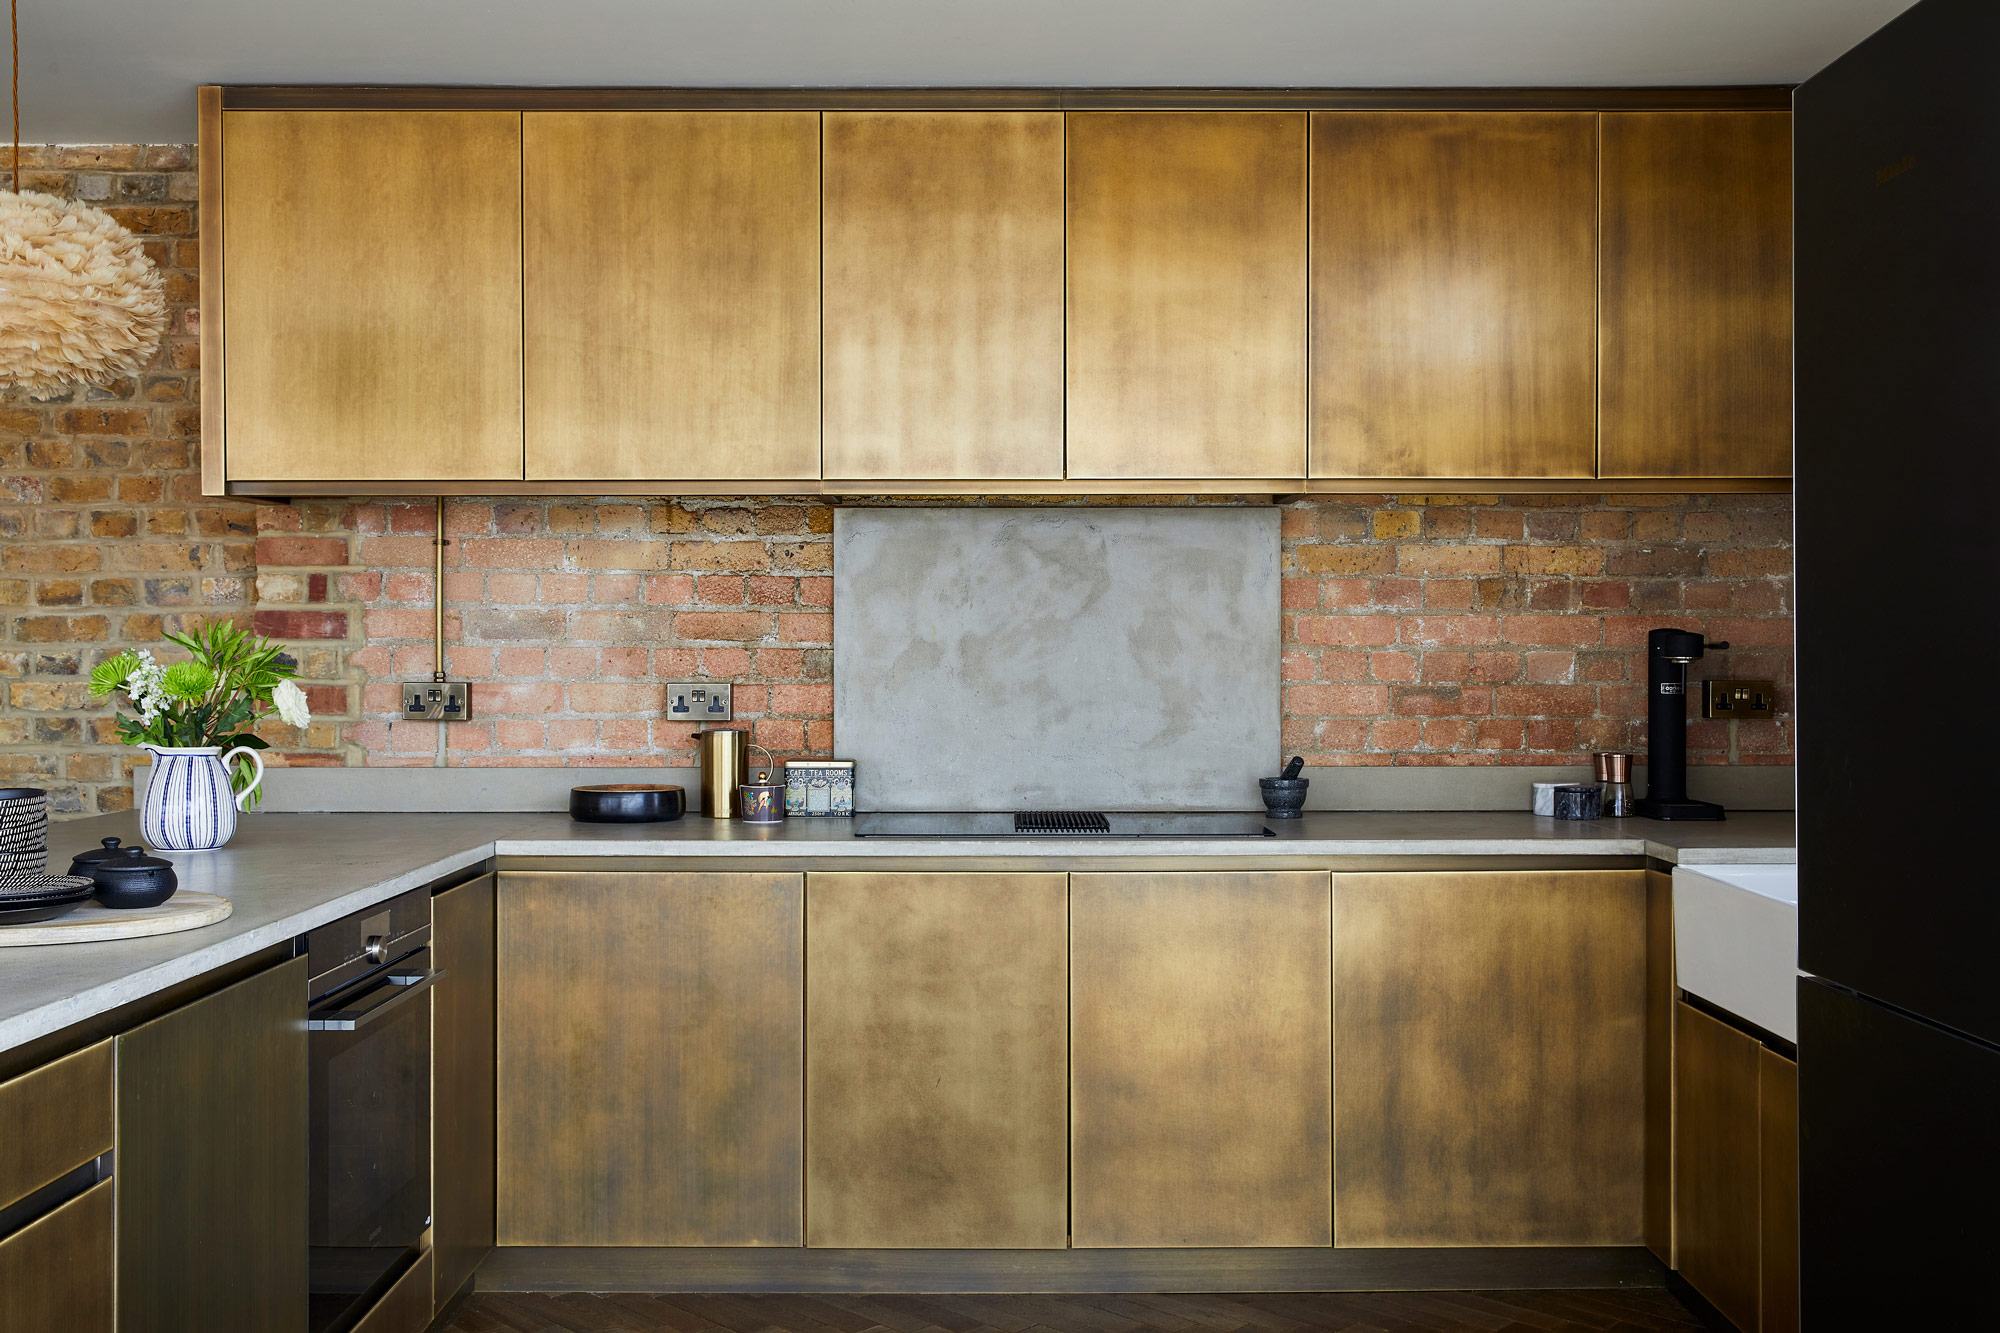 Aged brass kitchen with concrete worktops and exposed brick wall